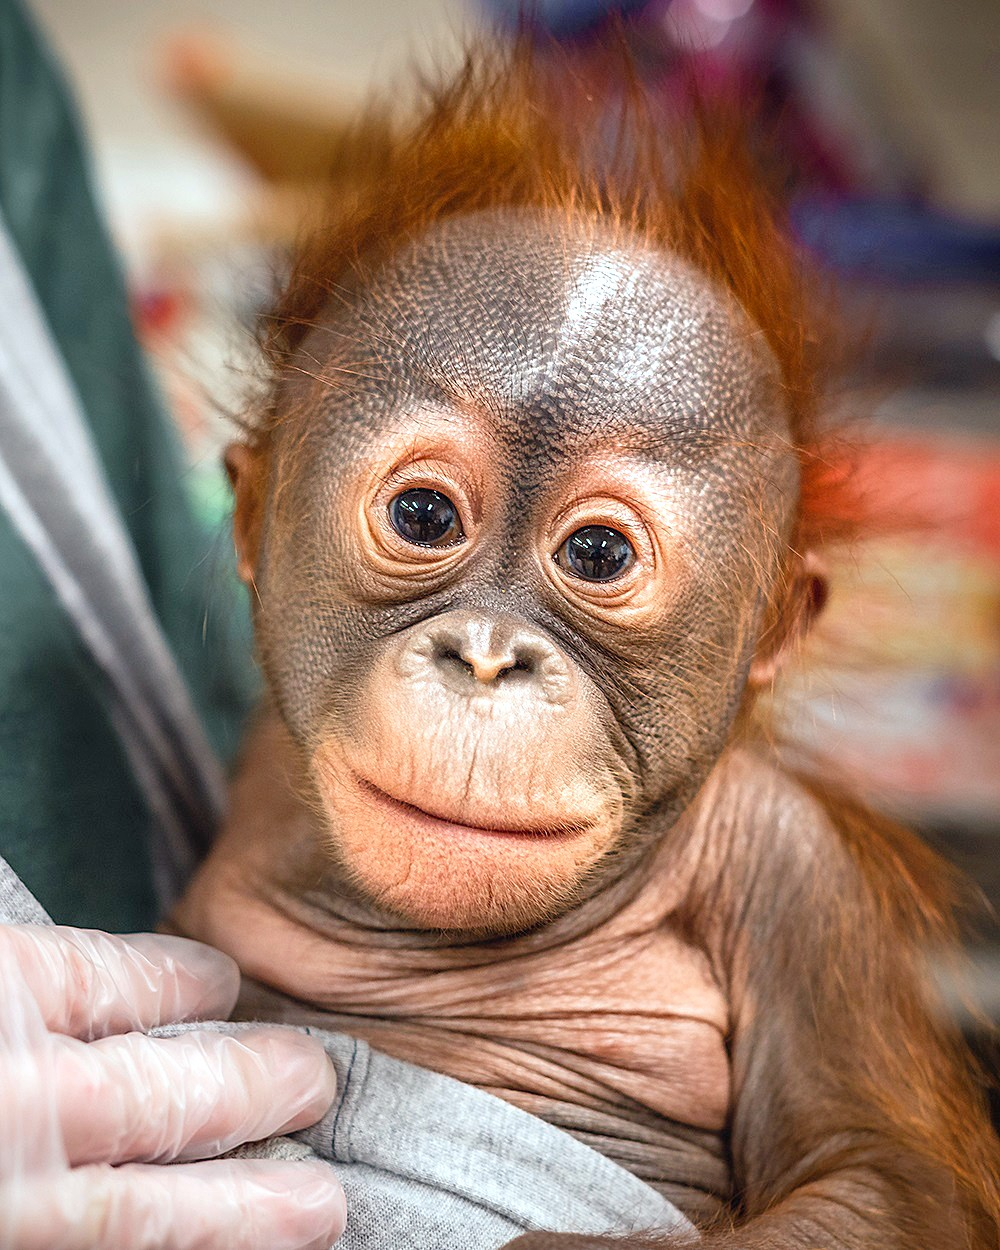 For about six months, the Toledo Zoo animal care staff provided 24-hour-a-day care for new baby male baby orangutan, Fajar (fah-zhar), when complications arose after his birth on Oct. 12, 2019. Fajar has been successfully reunited with his mother, Leela. (Photo courtesy of the Toledo Zoo)